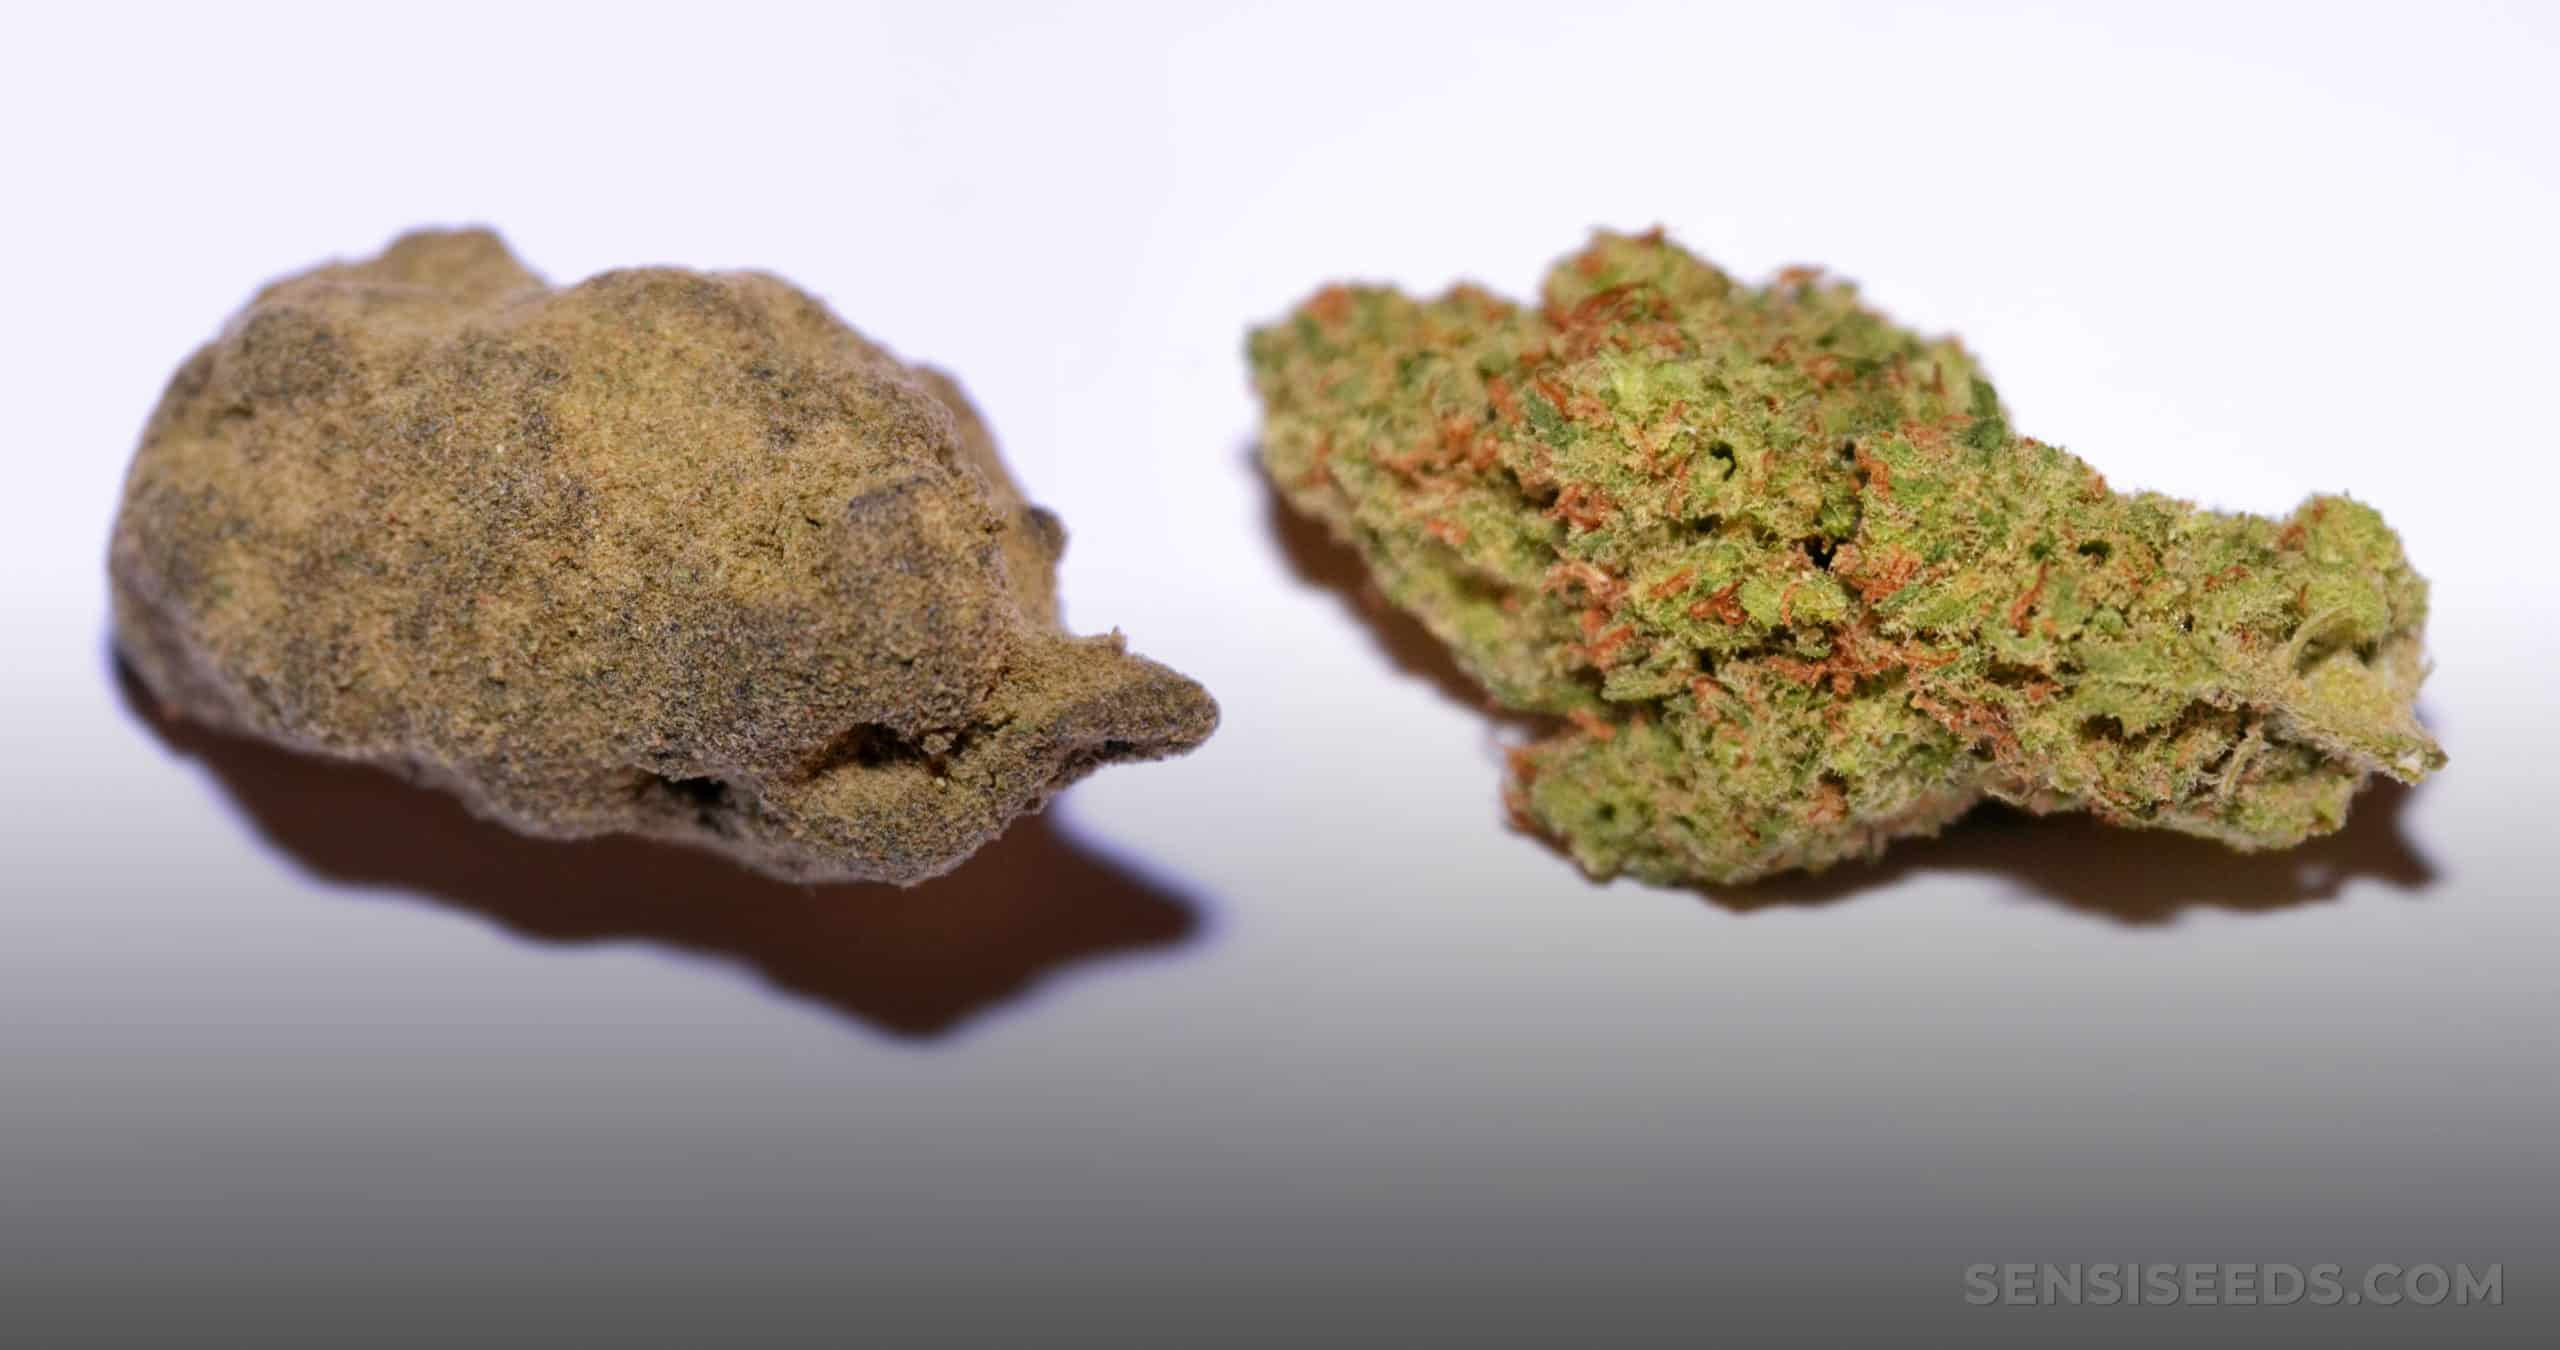 Hash Vs. Weed The Difference